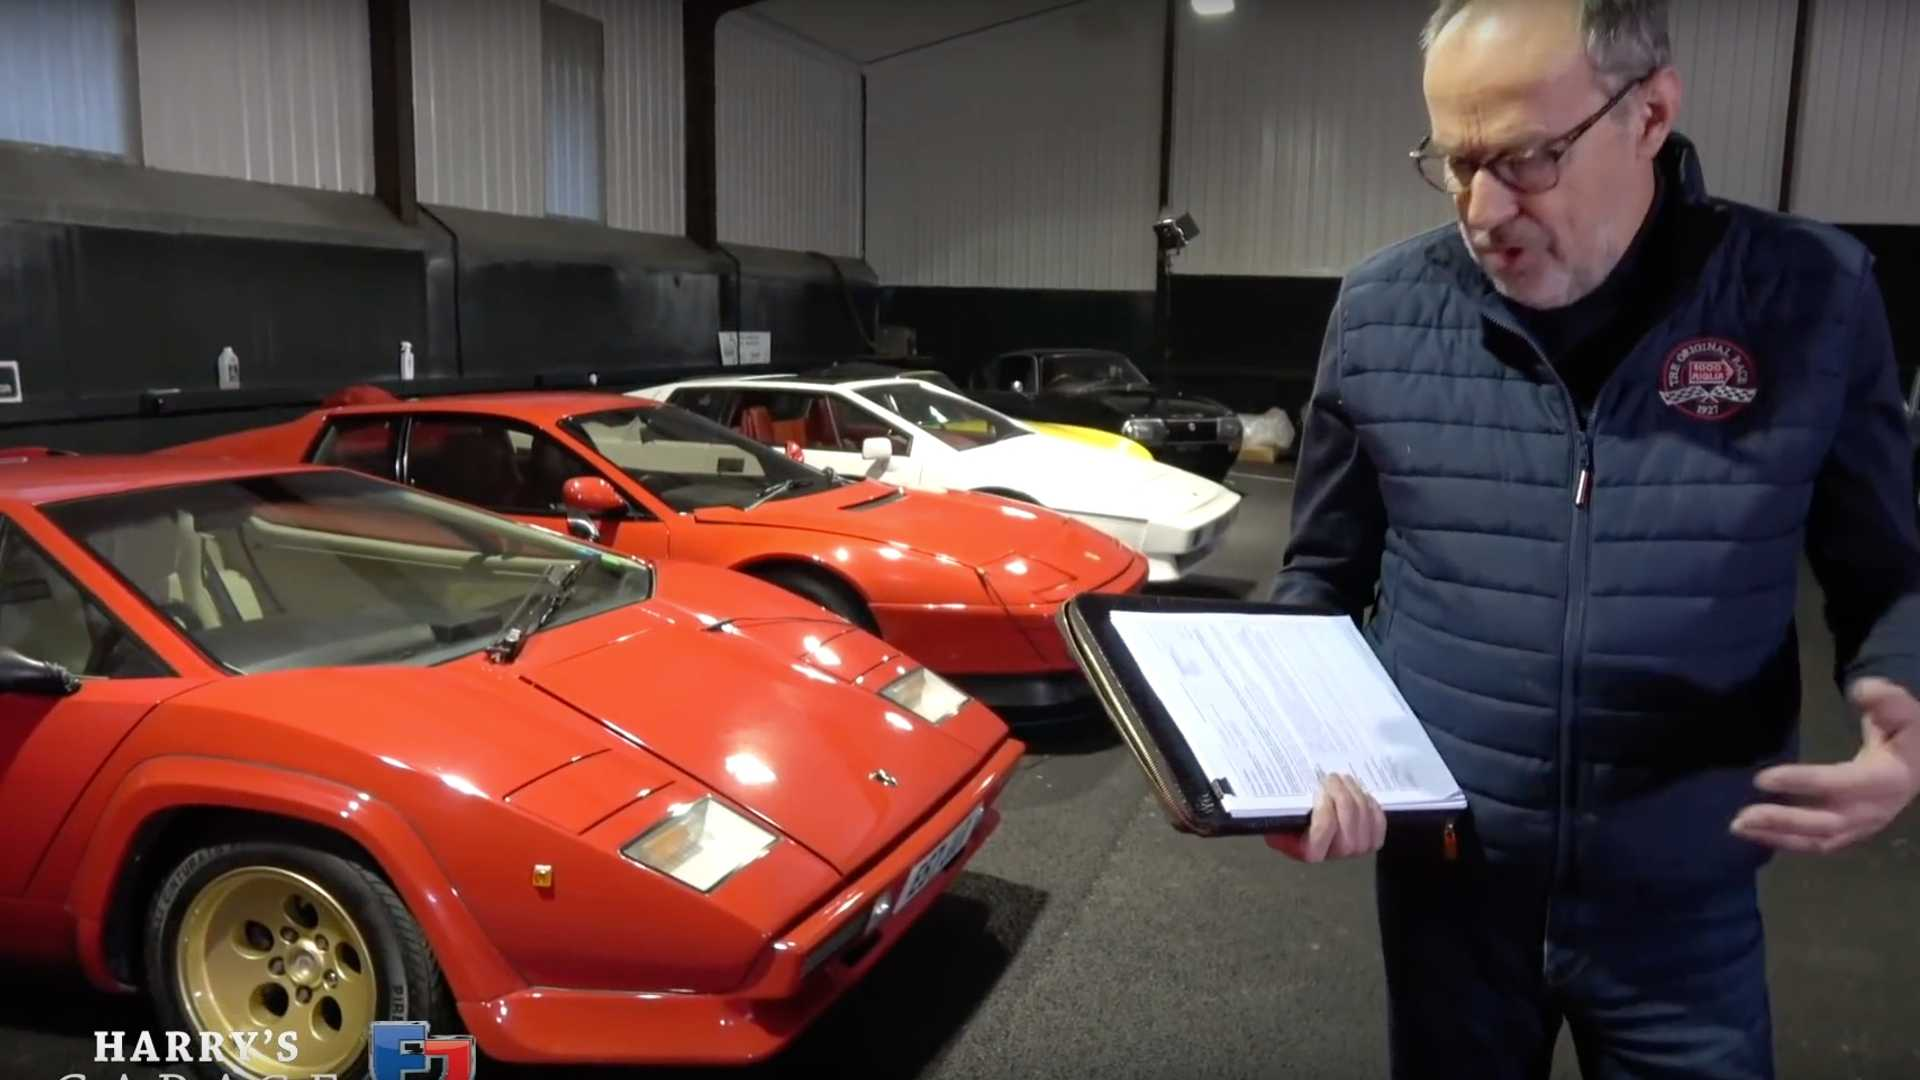 Harry Metcalfe Details Costs Related to His 20 Cars and 16 Bikes